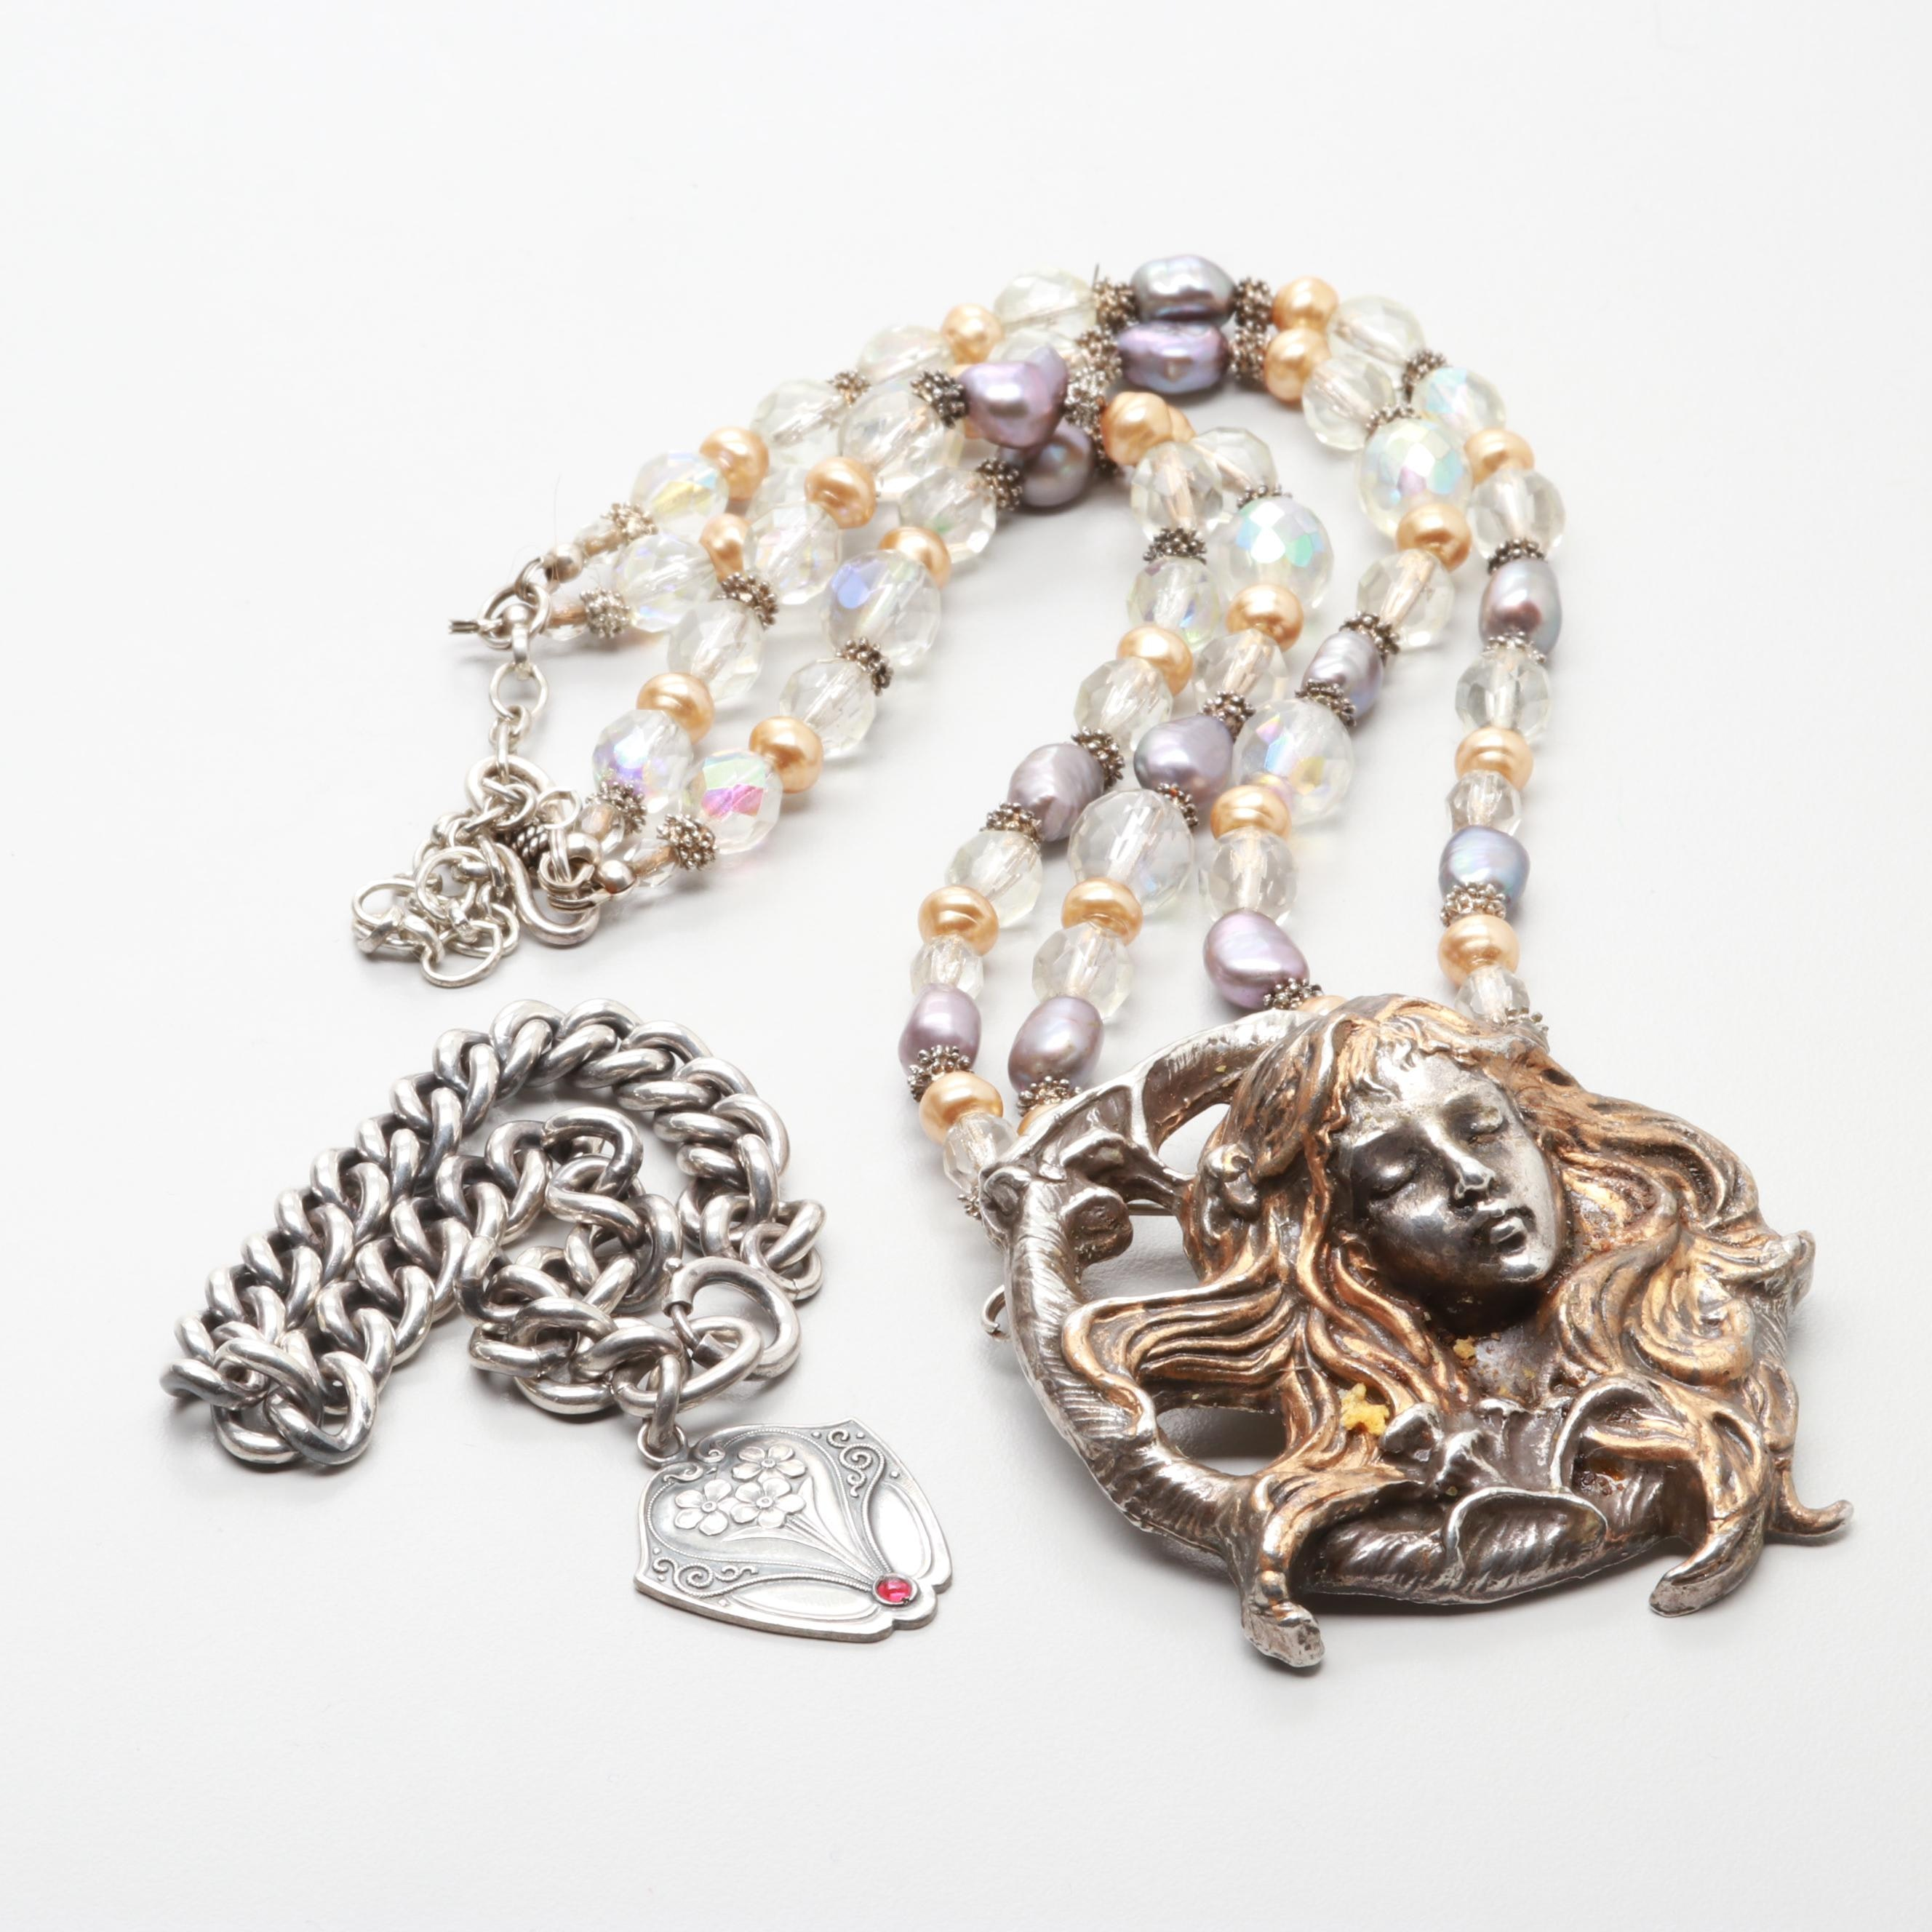 Sterling Helen Kish Beaded Mermaid Necklace and Bracelet with 800 Silver Charm